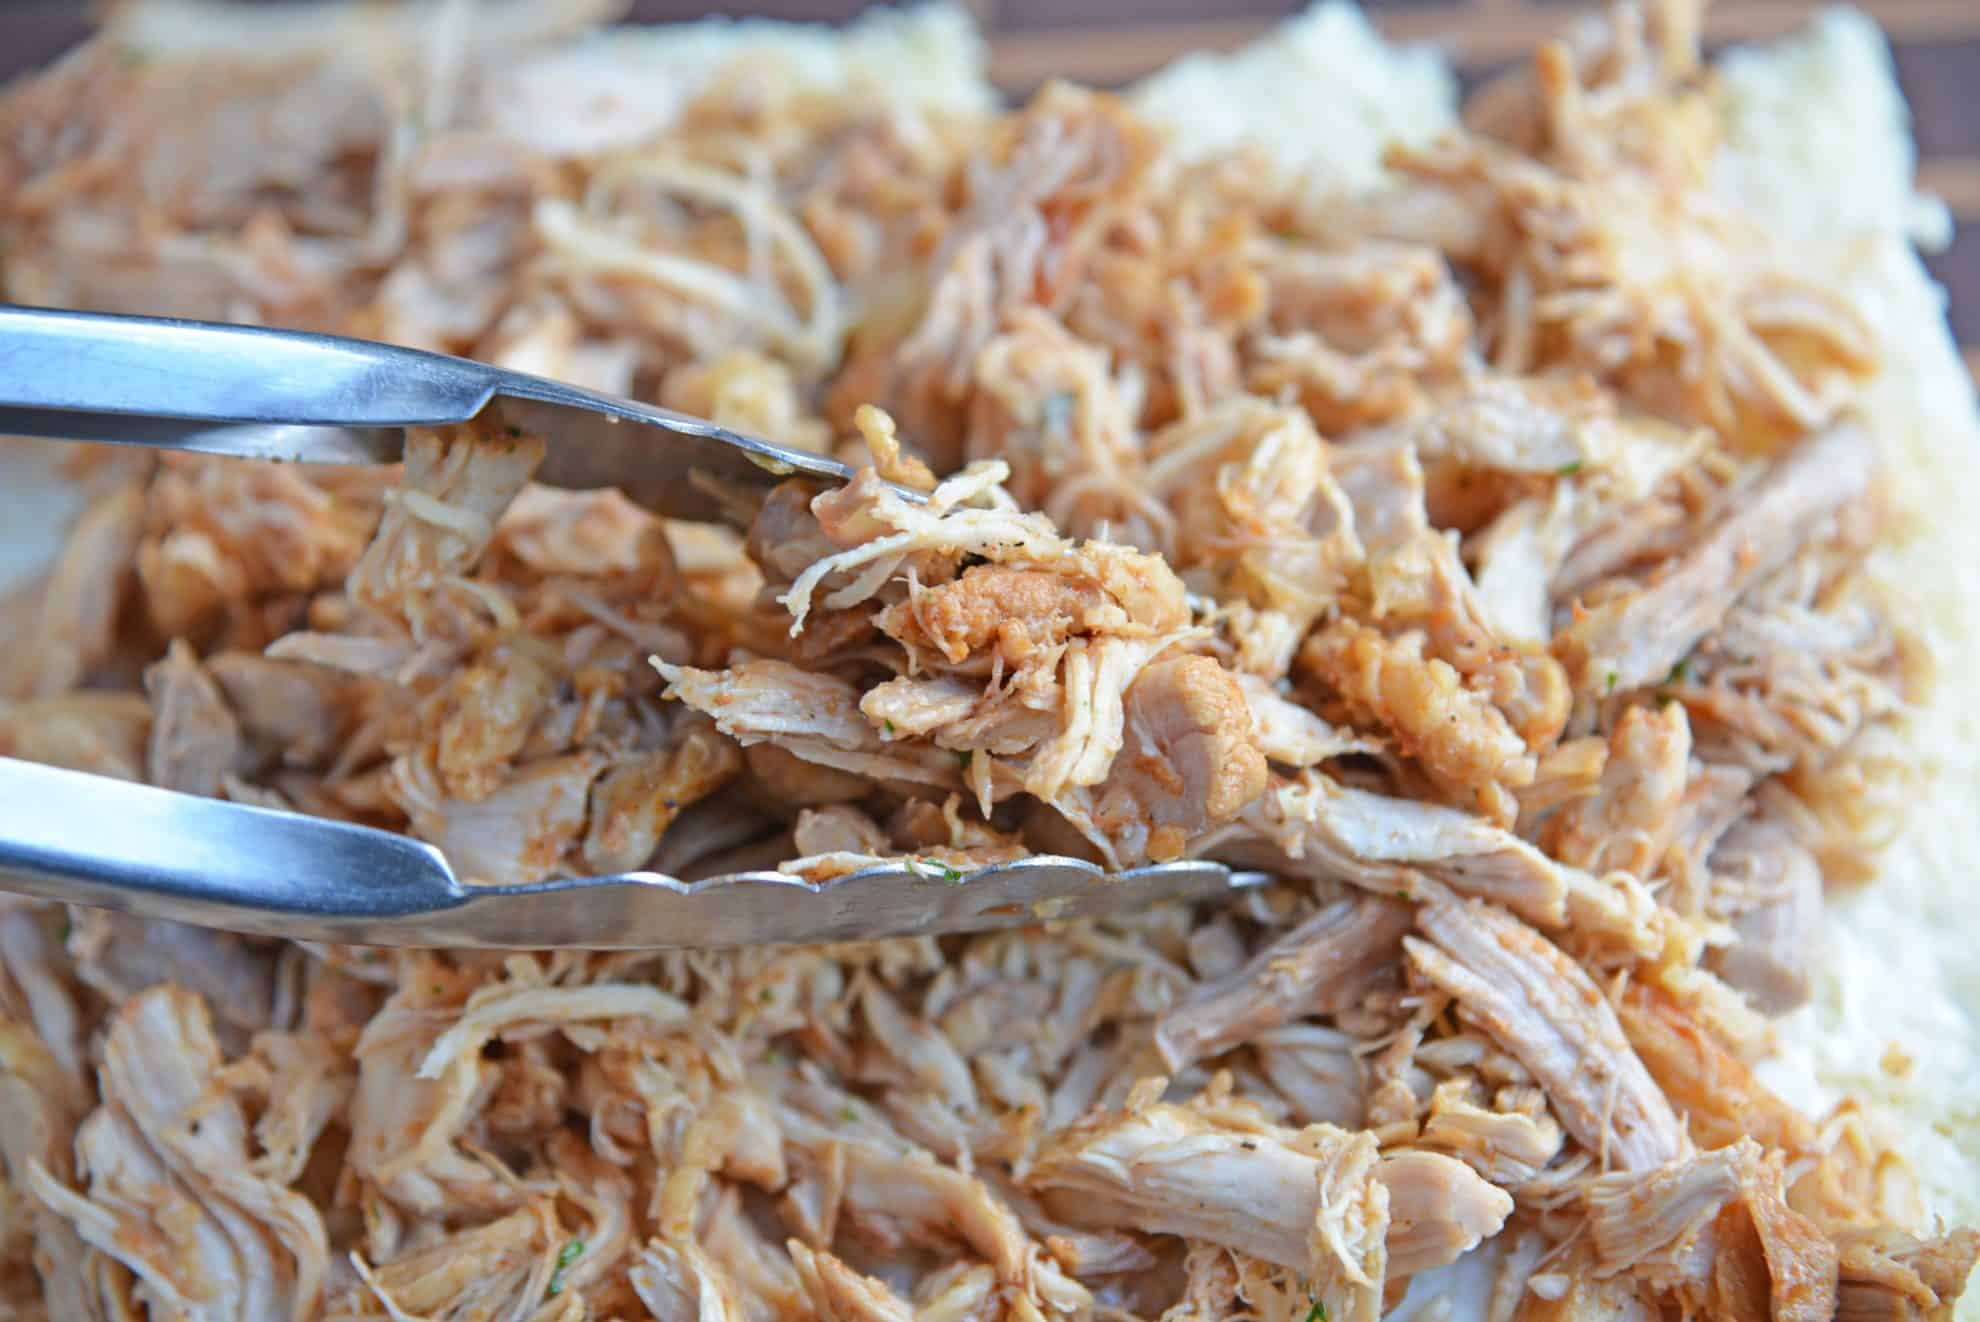 Tongs with shredded chicken